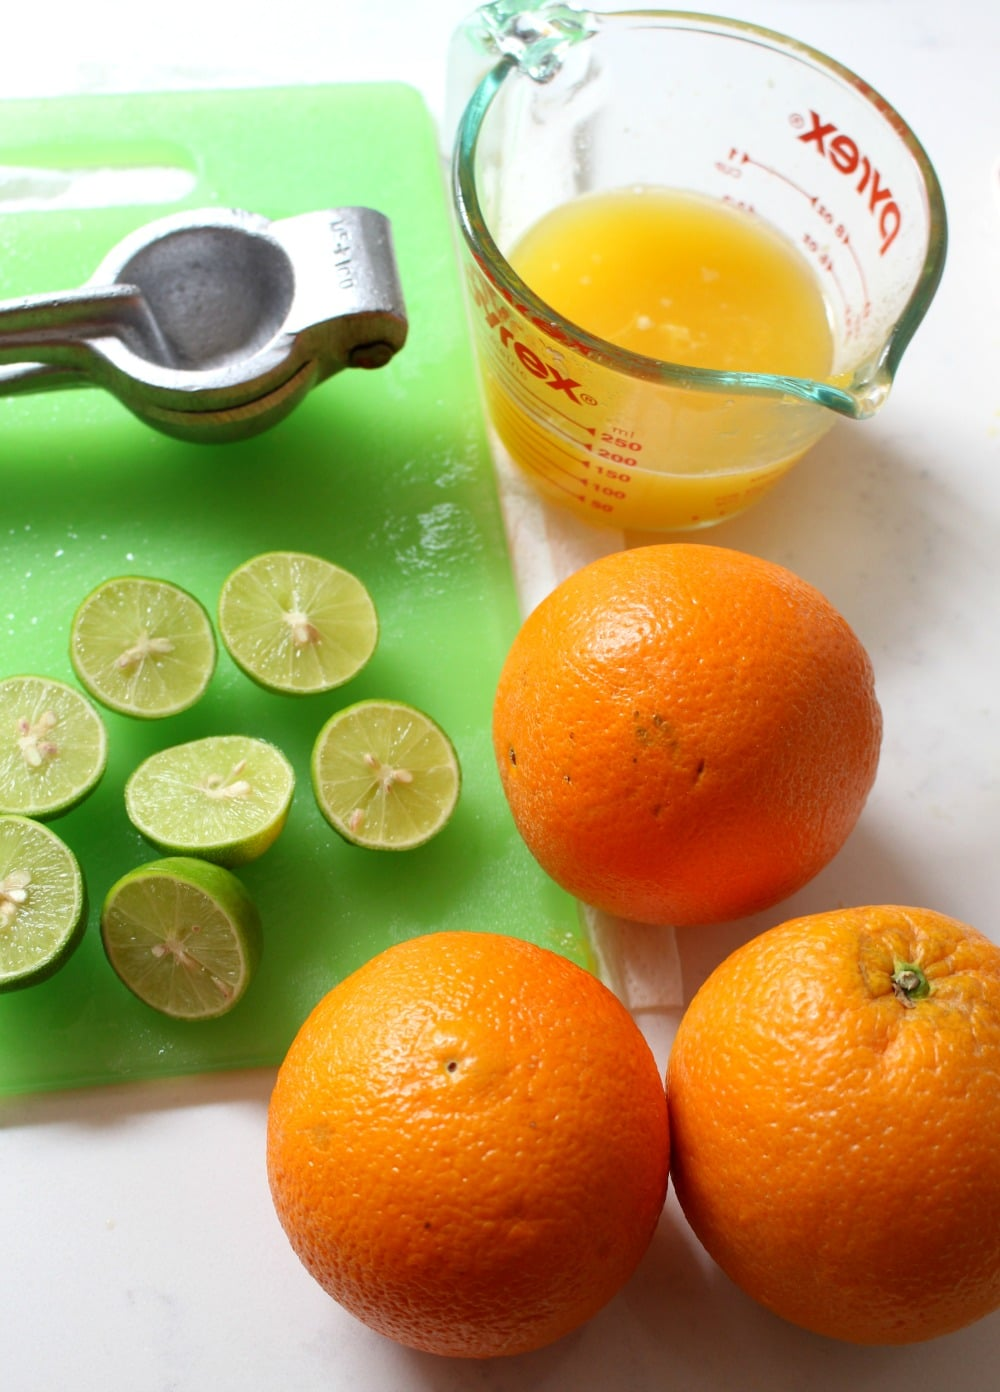 Oranges and limes being juiced.